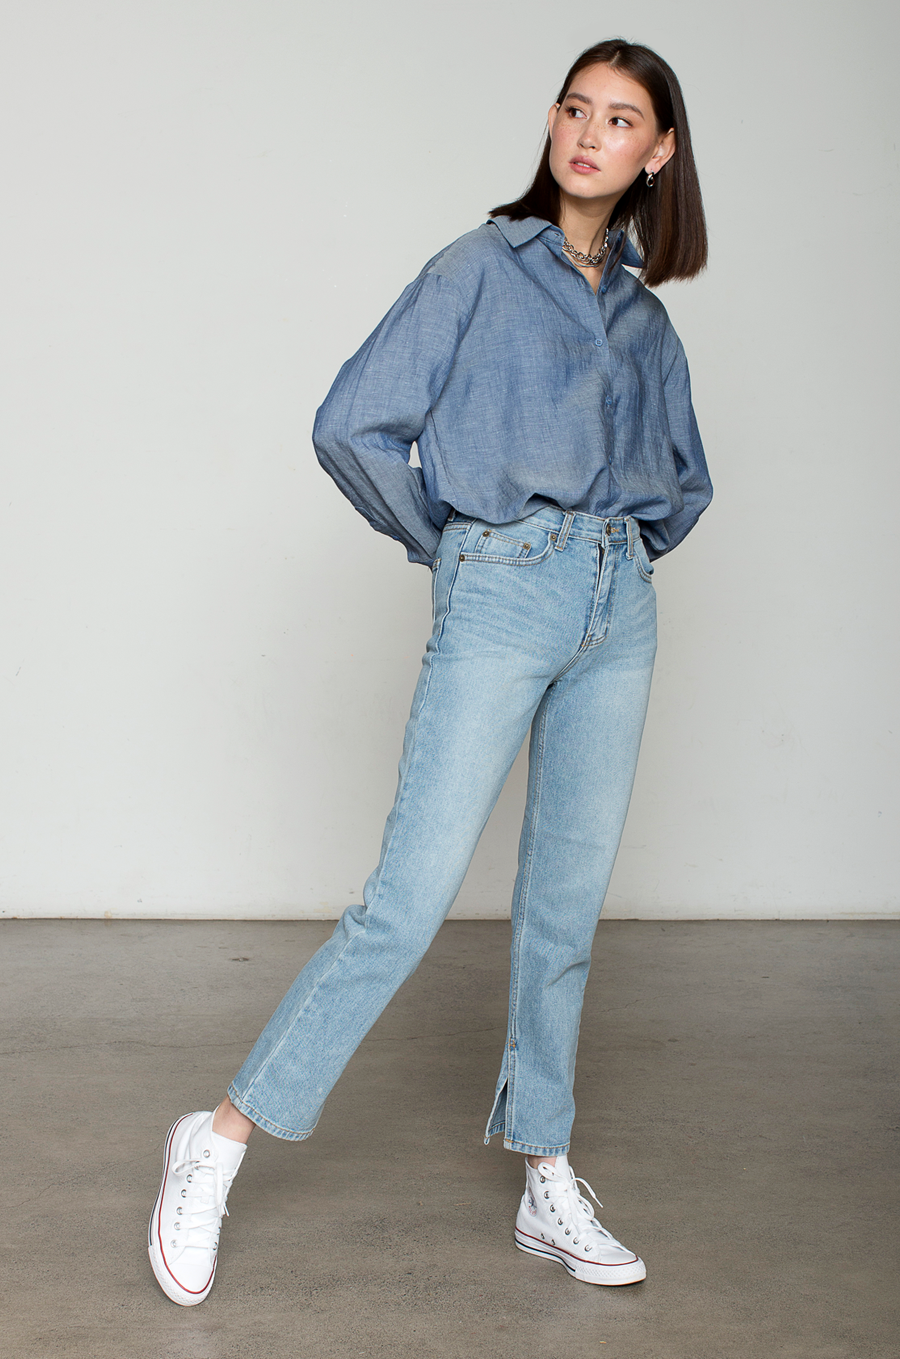 New Zealand based label OLIVIA is the independent fashion and beauty retailer offering own label products including dresses, tops, jeans outerwear and more. | OLIVIA NZ Store online